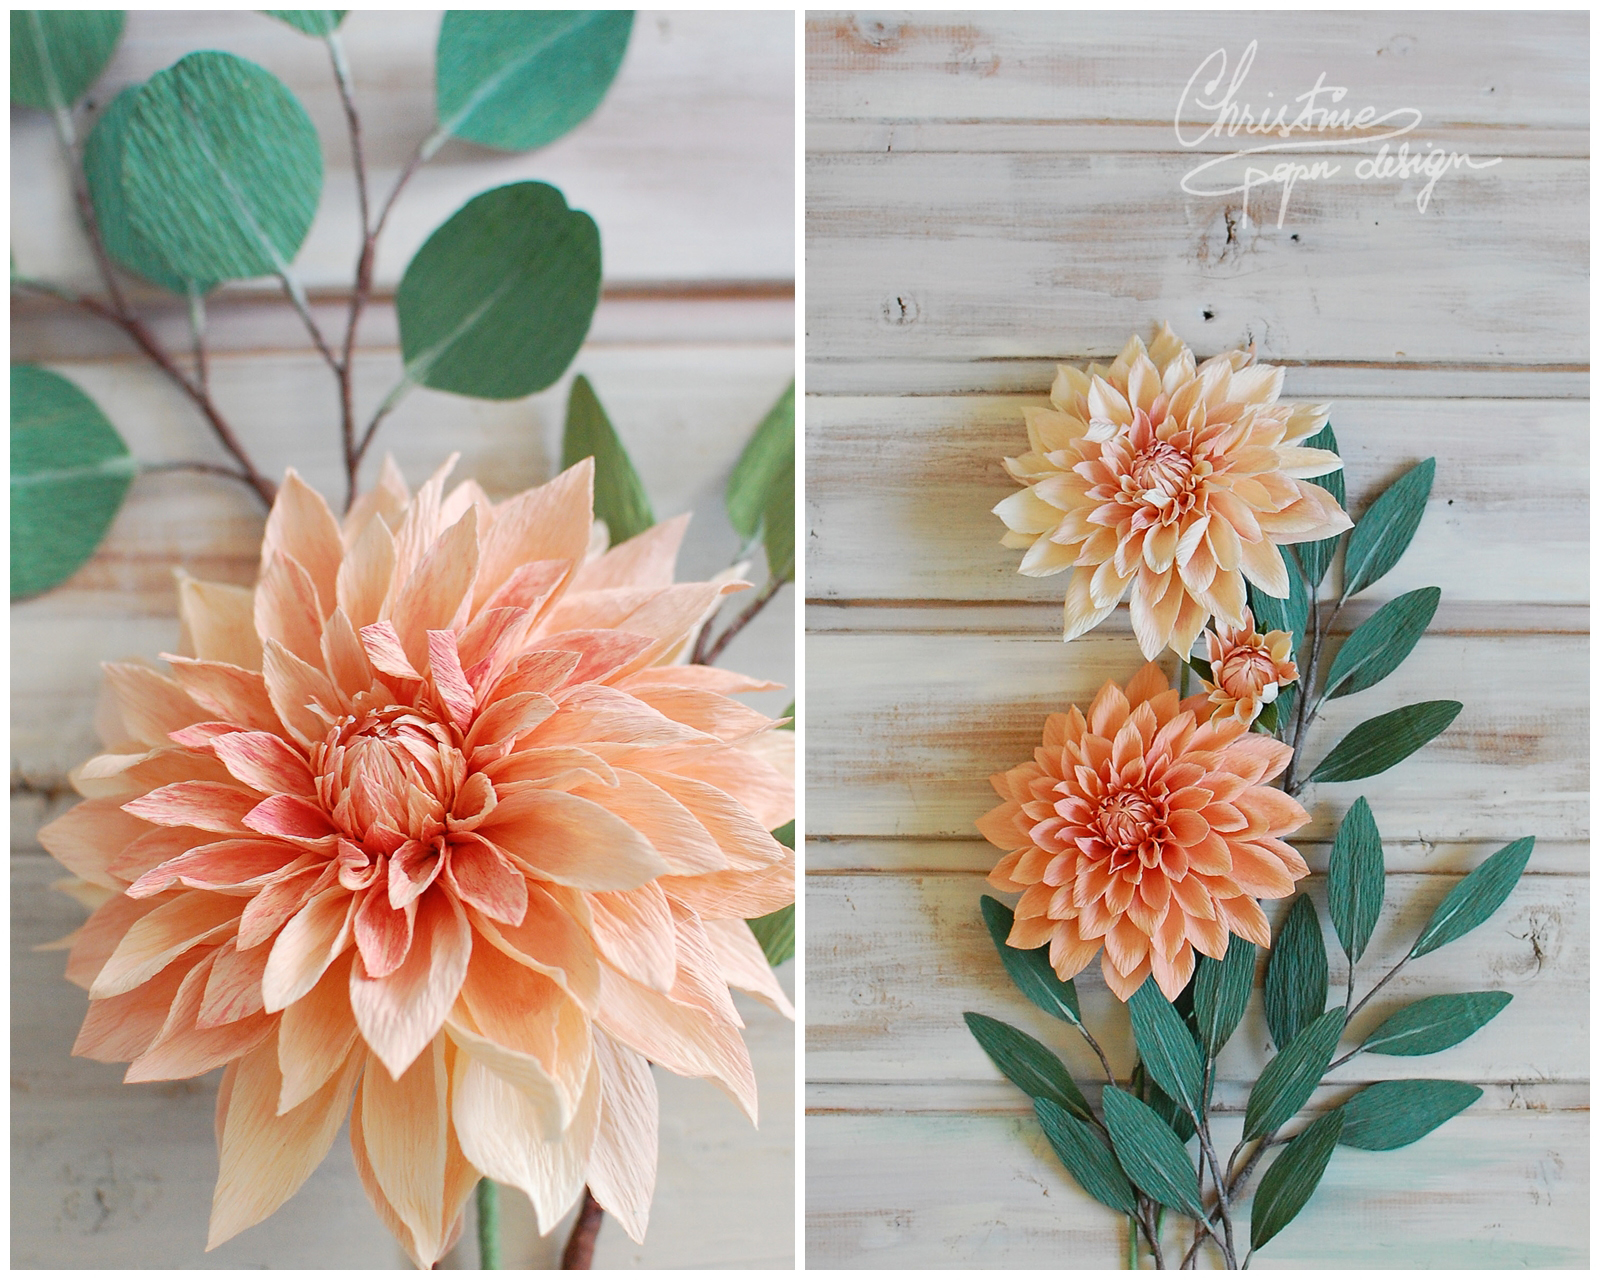 paper dahlias by Christinepaperdesign